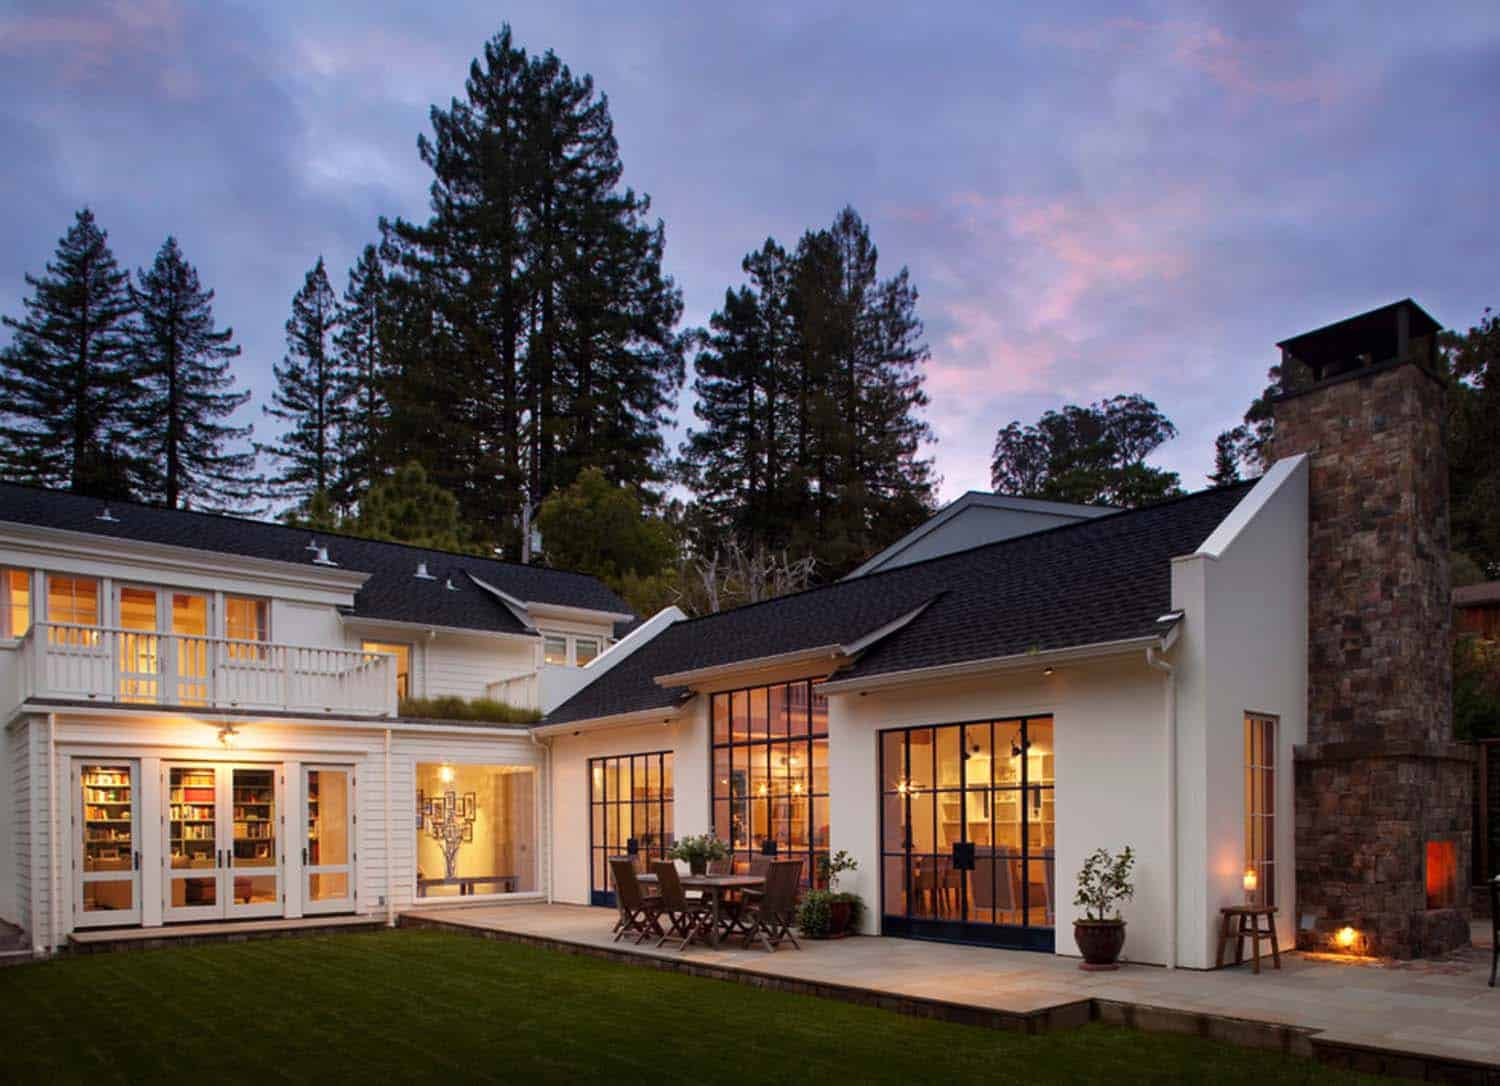 Chic modern farmhouse style in mill valley california for T shaped farmhouse floor plans